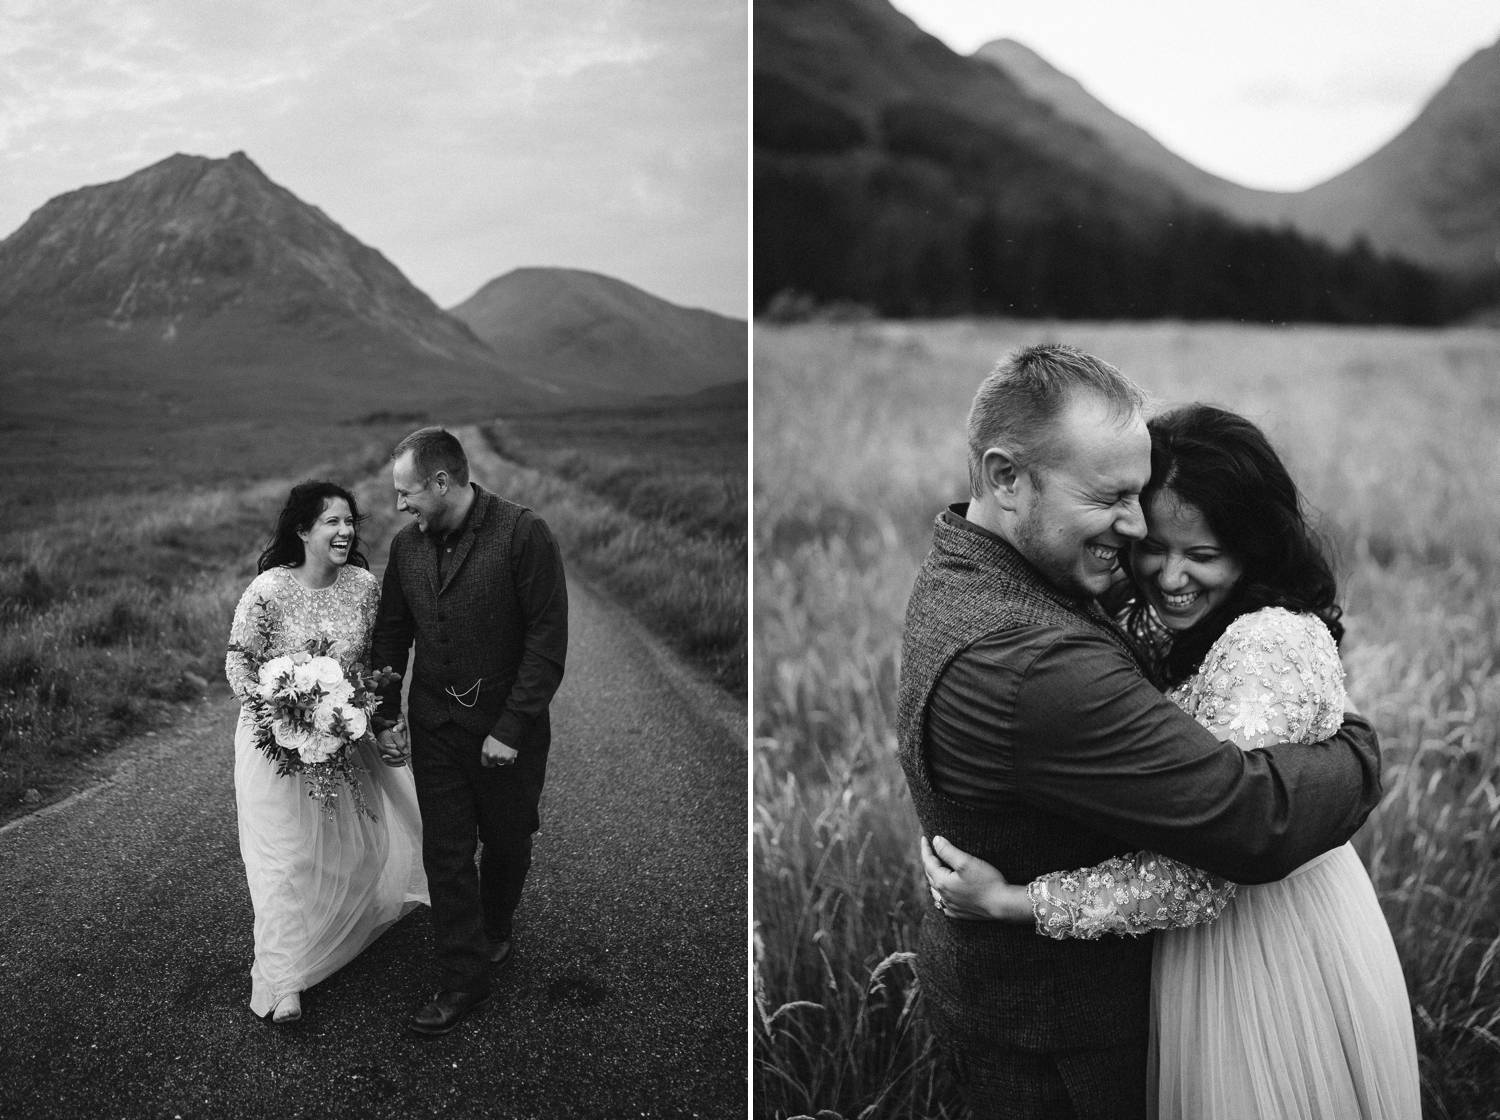 A black and white series shows a bride and groom strolling down an old country road in Ireland then embracing in the grassy hills. Elopement photograph by Rob Dight.